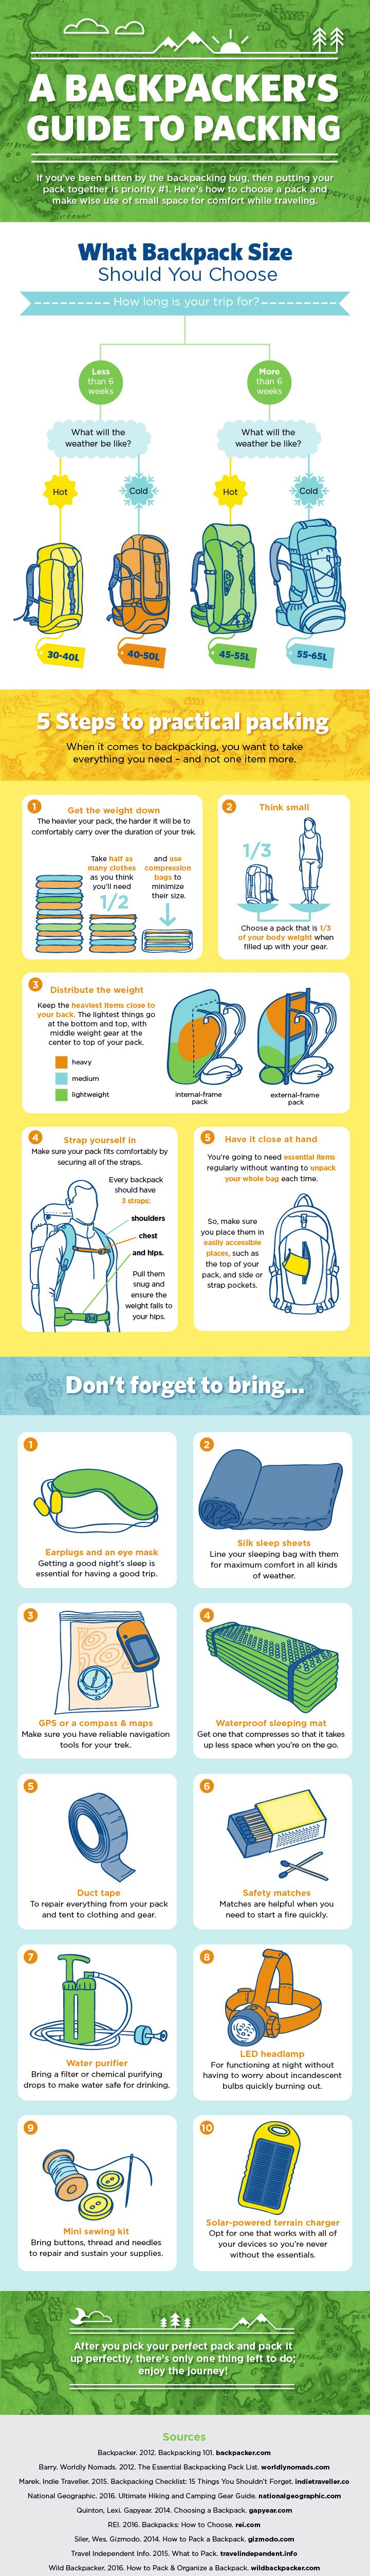 75 A Backpackers Guide to Packing